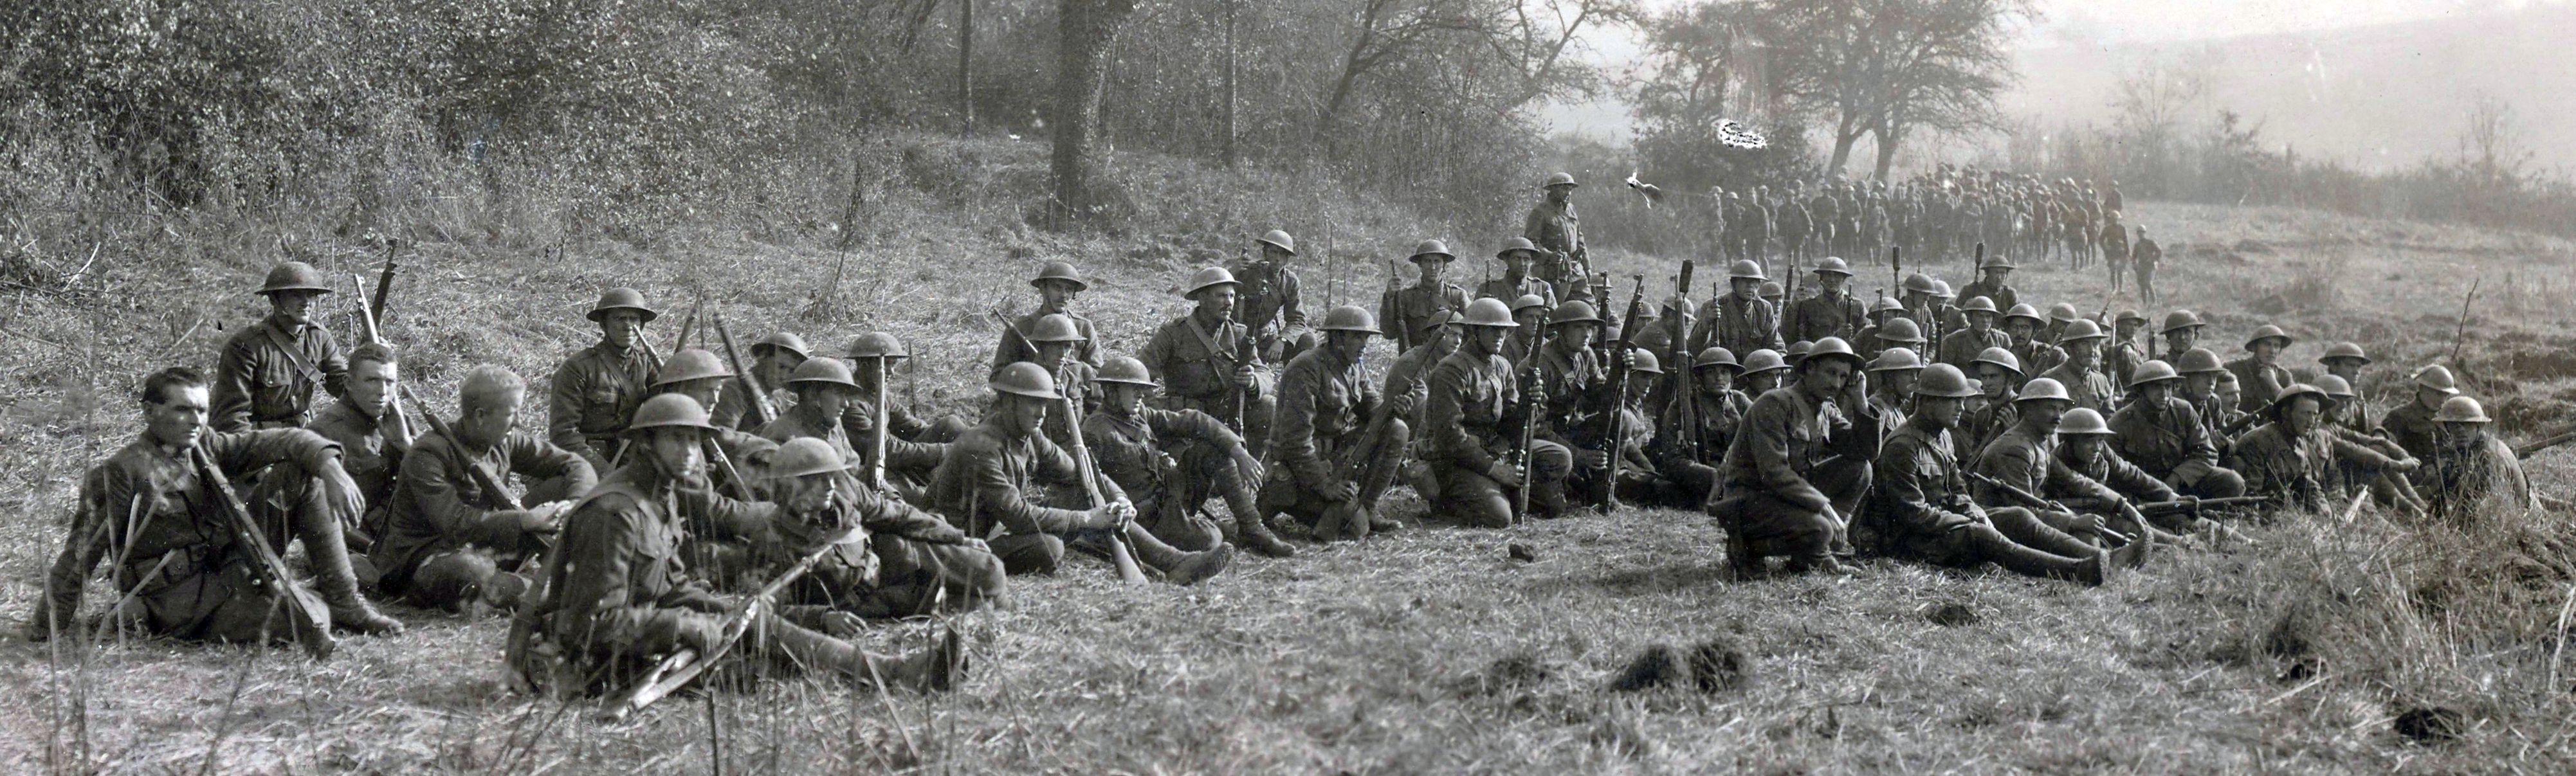 Survivors of the Lost Battalion's ordeal rest after being rescued. National Archives.